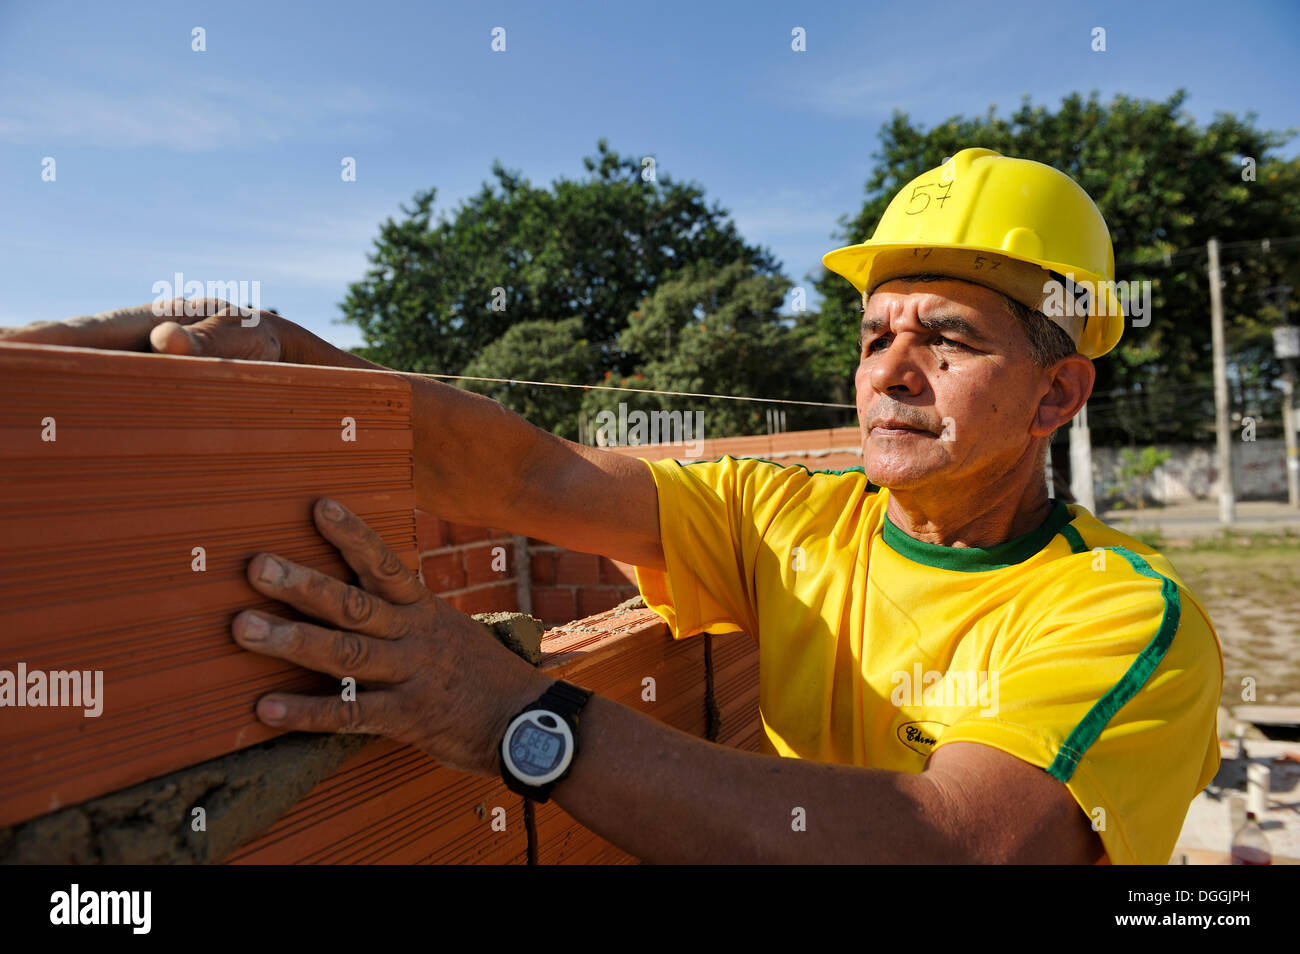 Man with a hard hat working on a building site of the 'Esperanca' housing co-operative, each family helping out on the project - Stock Image